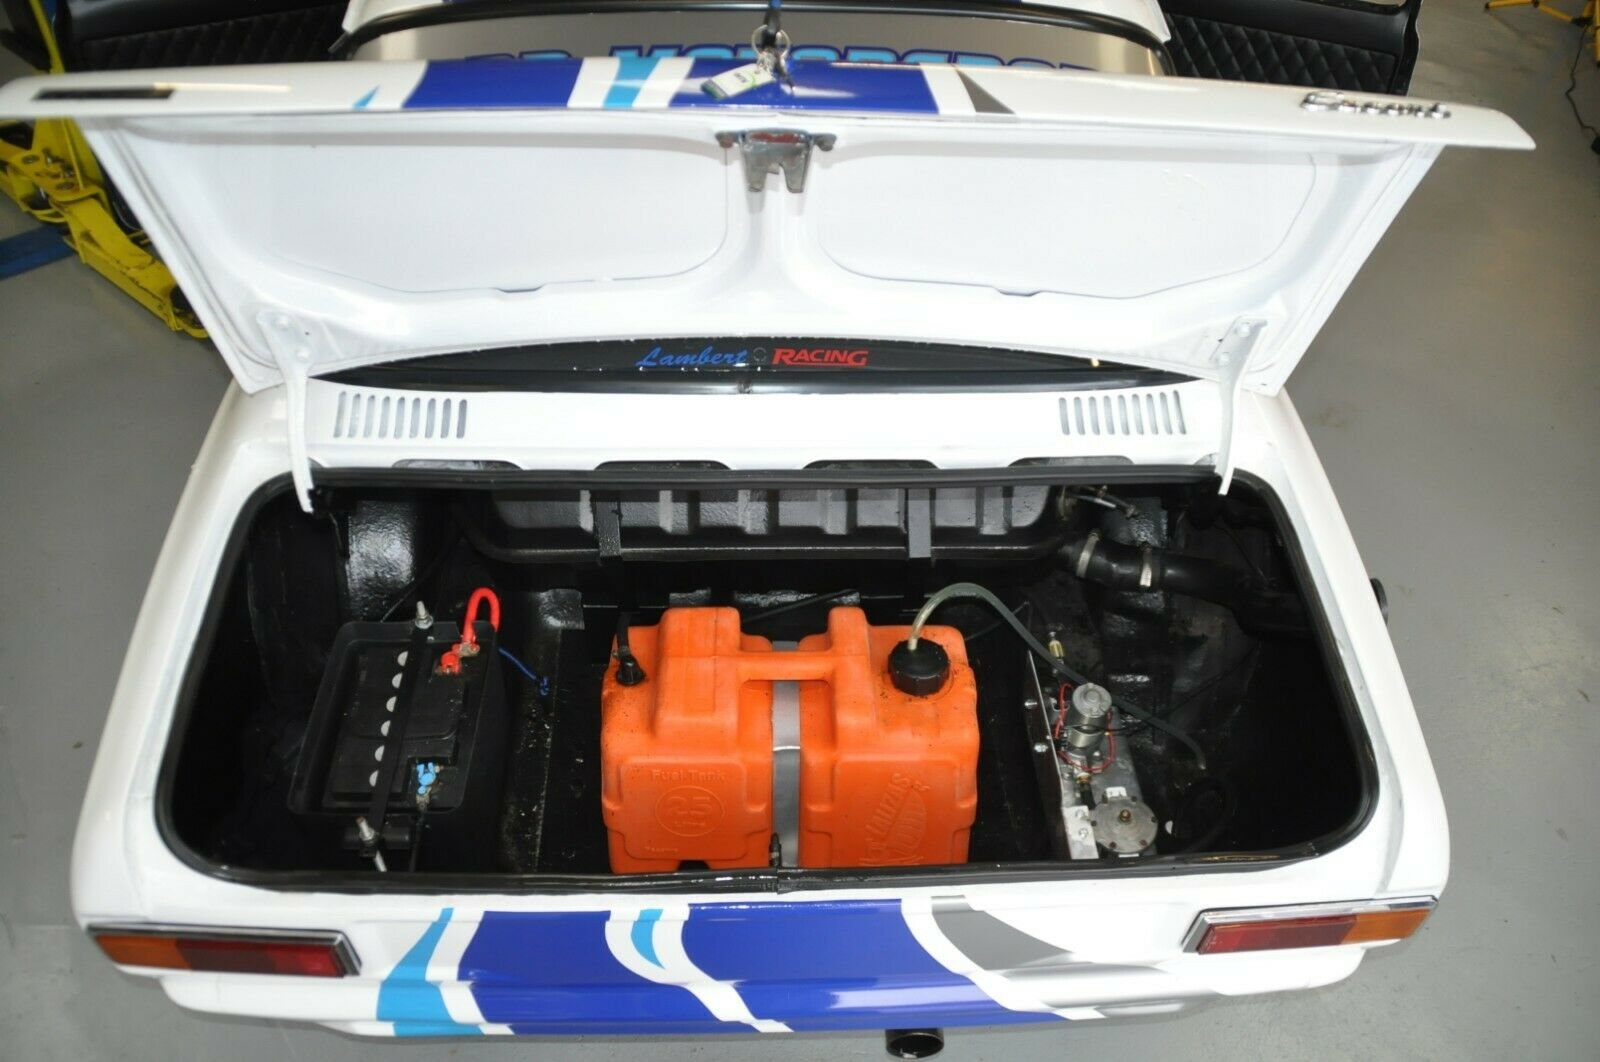 MK1 FORD ESCORT RACE CAR 2.0 PINTO 5 SPEED TYPE 9 GEARBOX MO For Sale (picture 5 of 6)